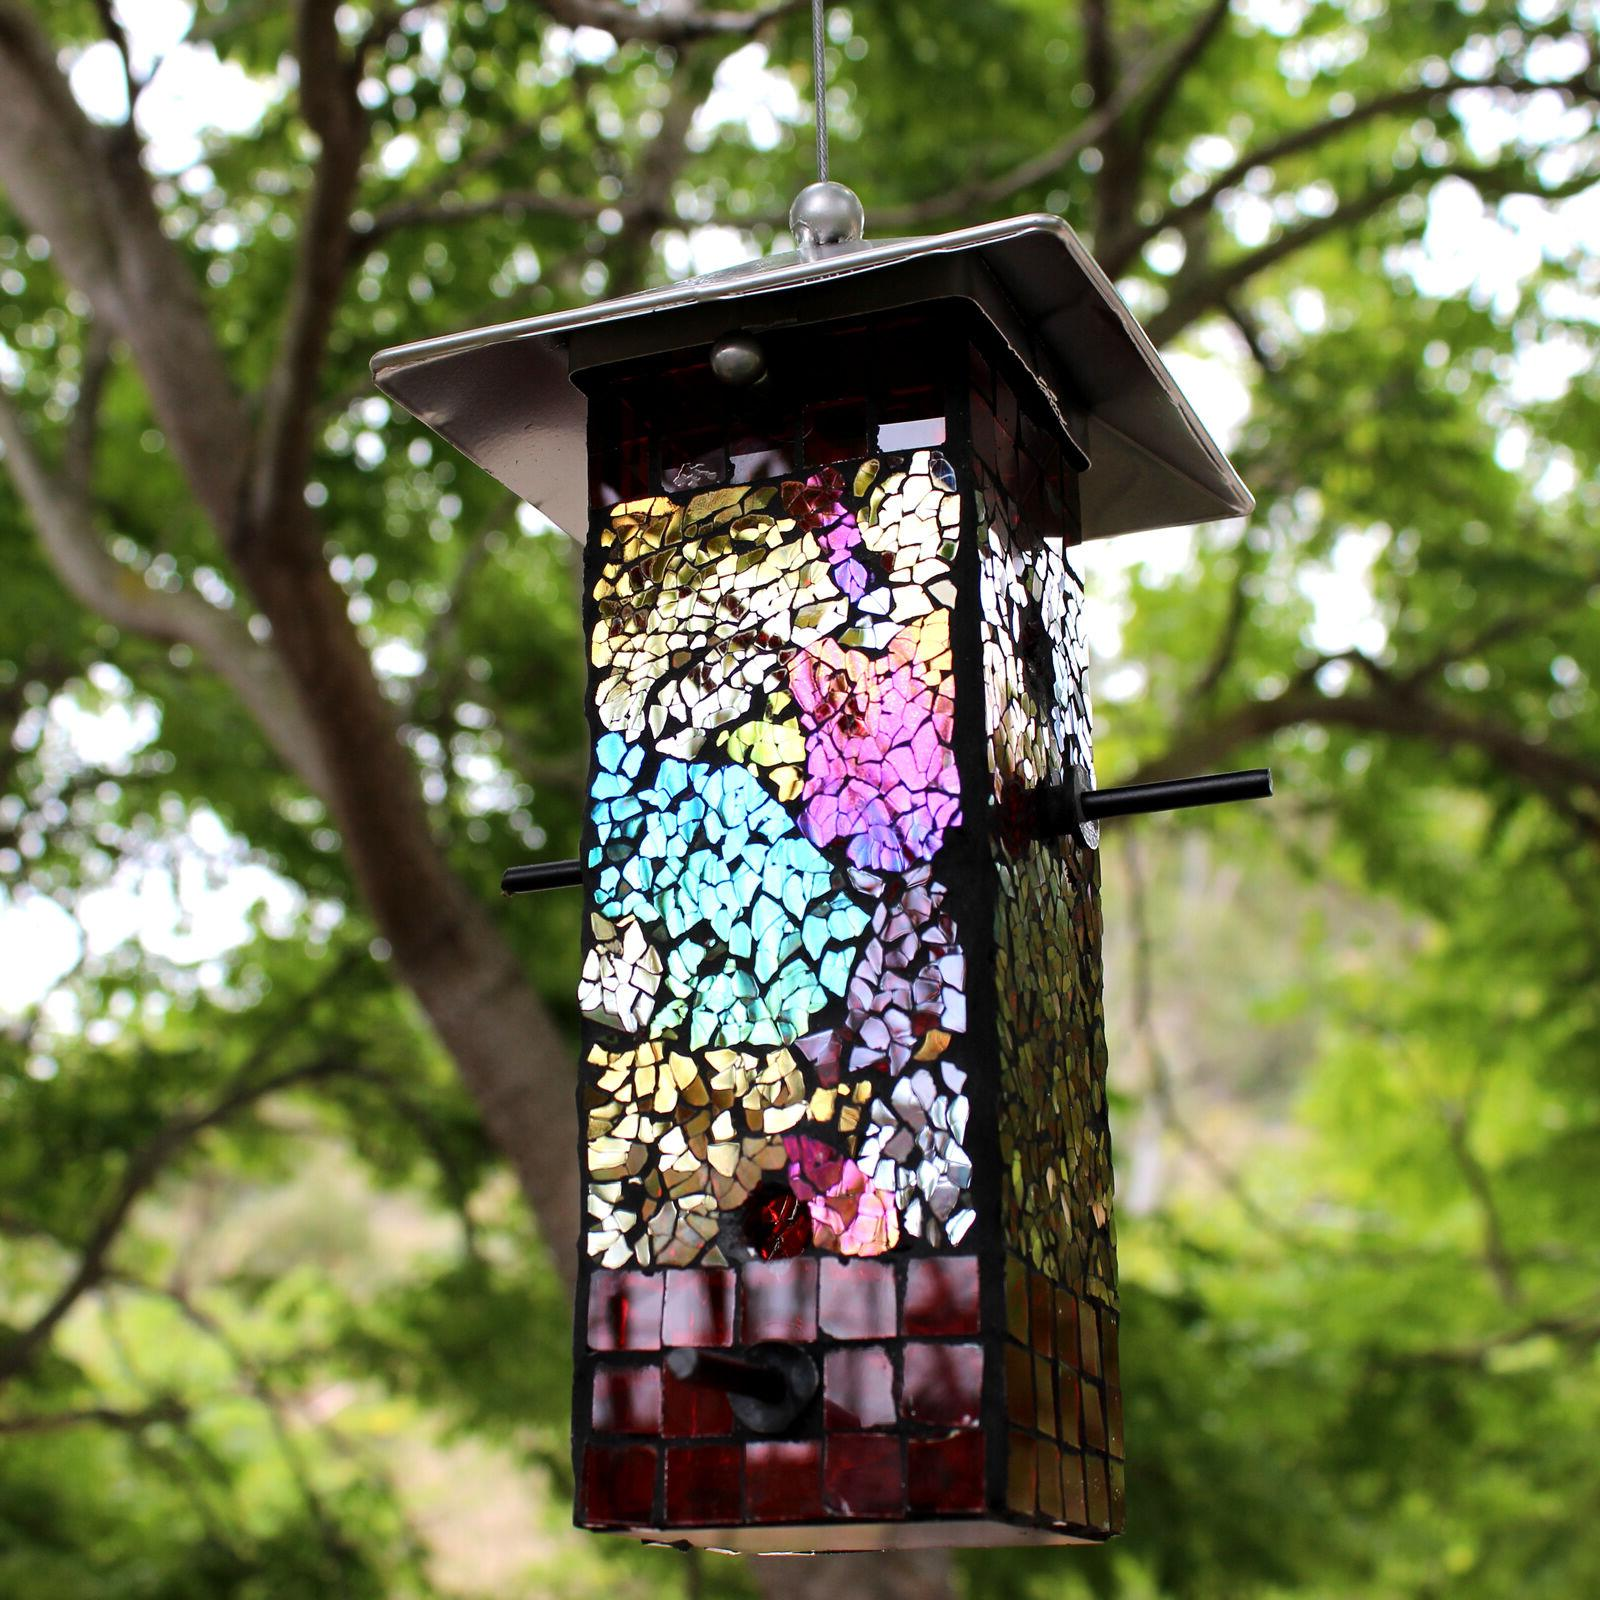 mosaic stained glass bird feeder large capacity